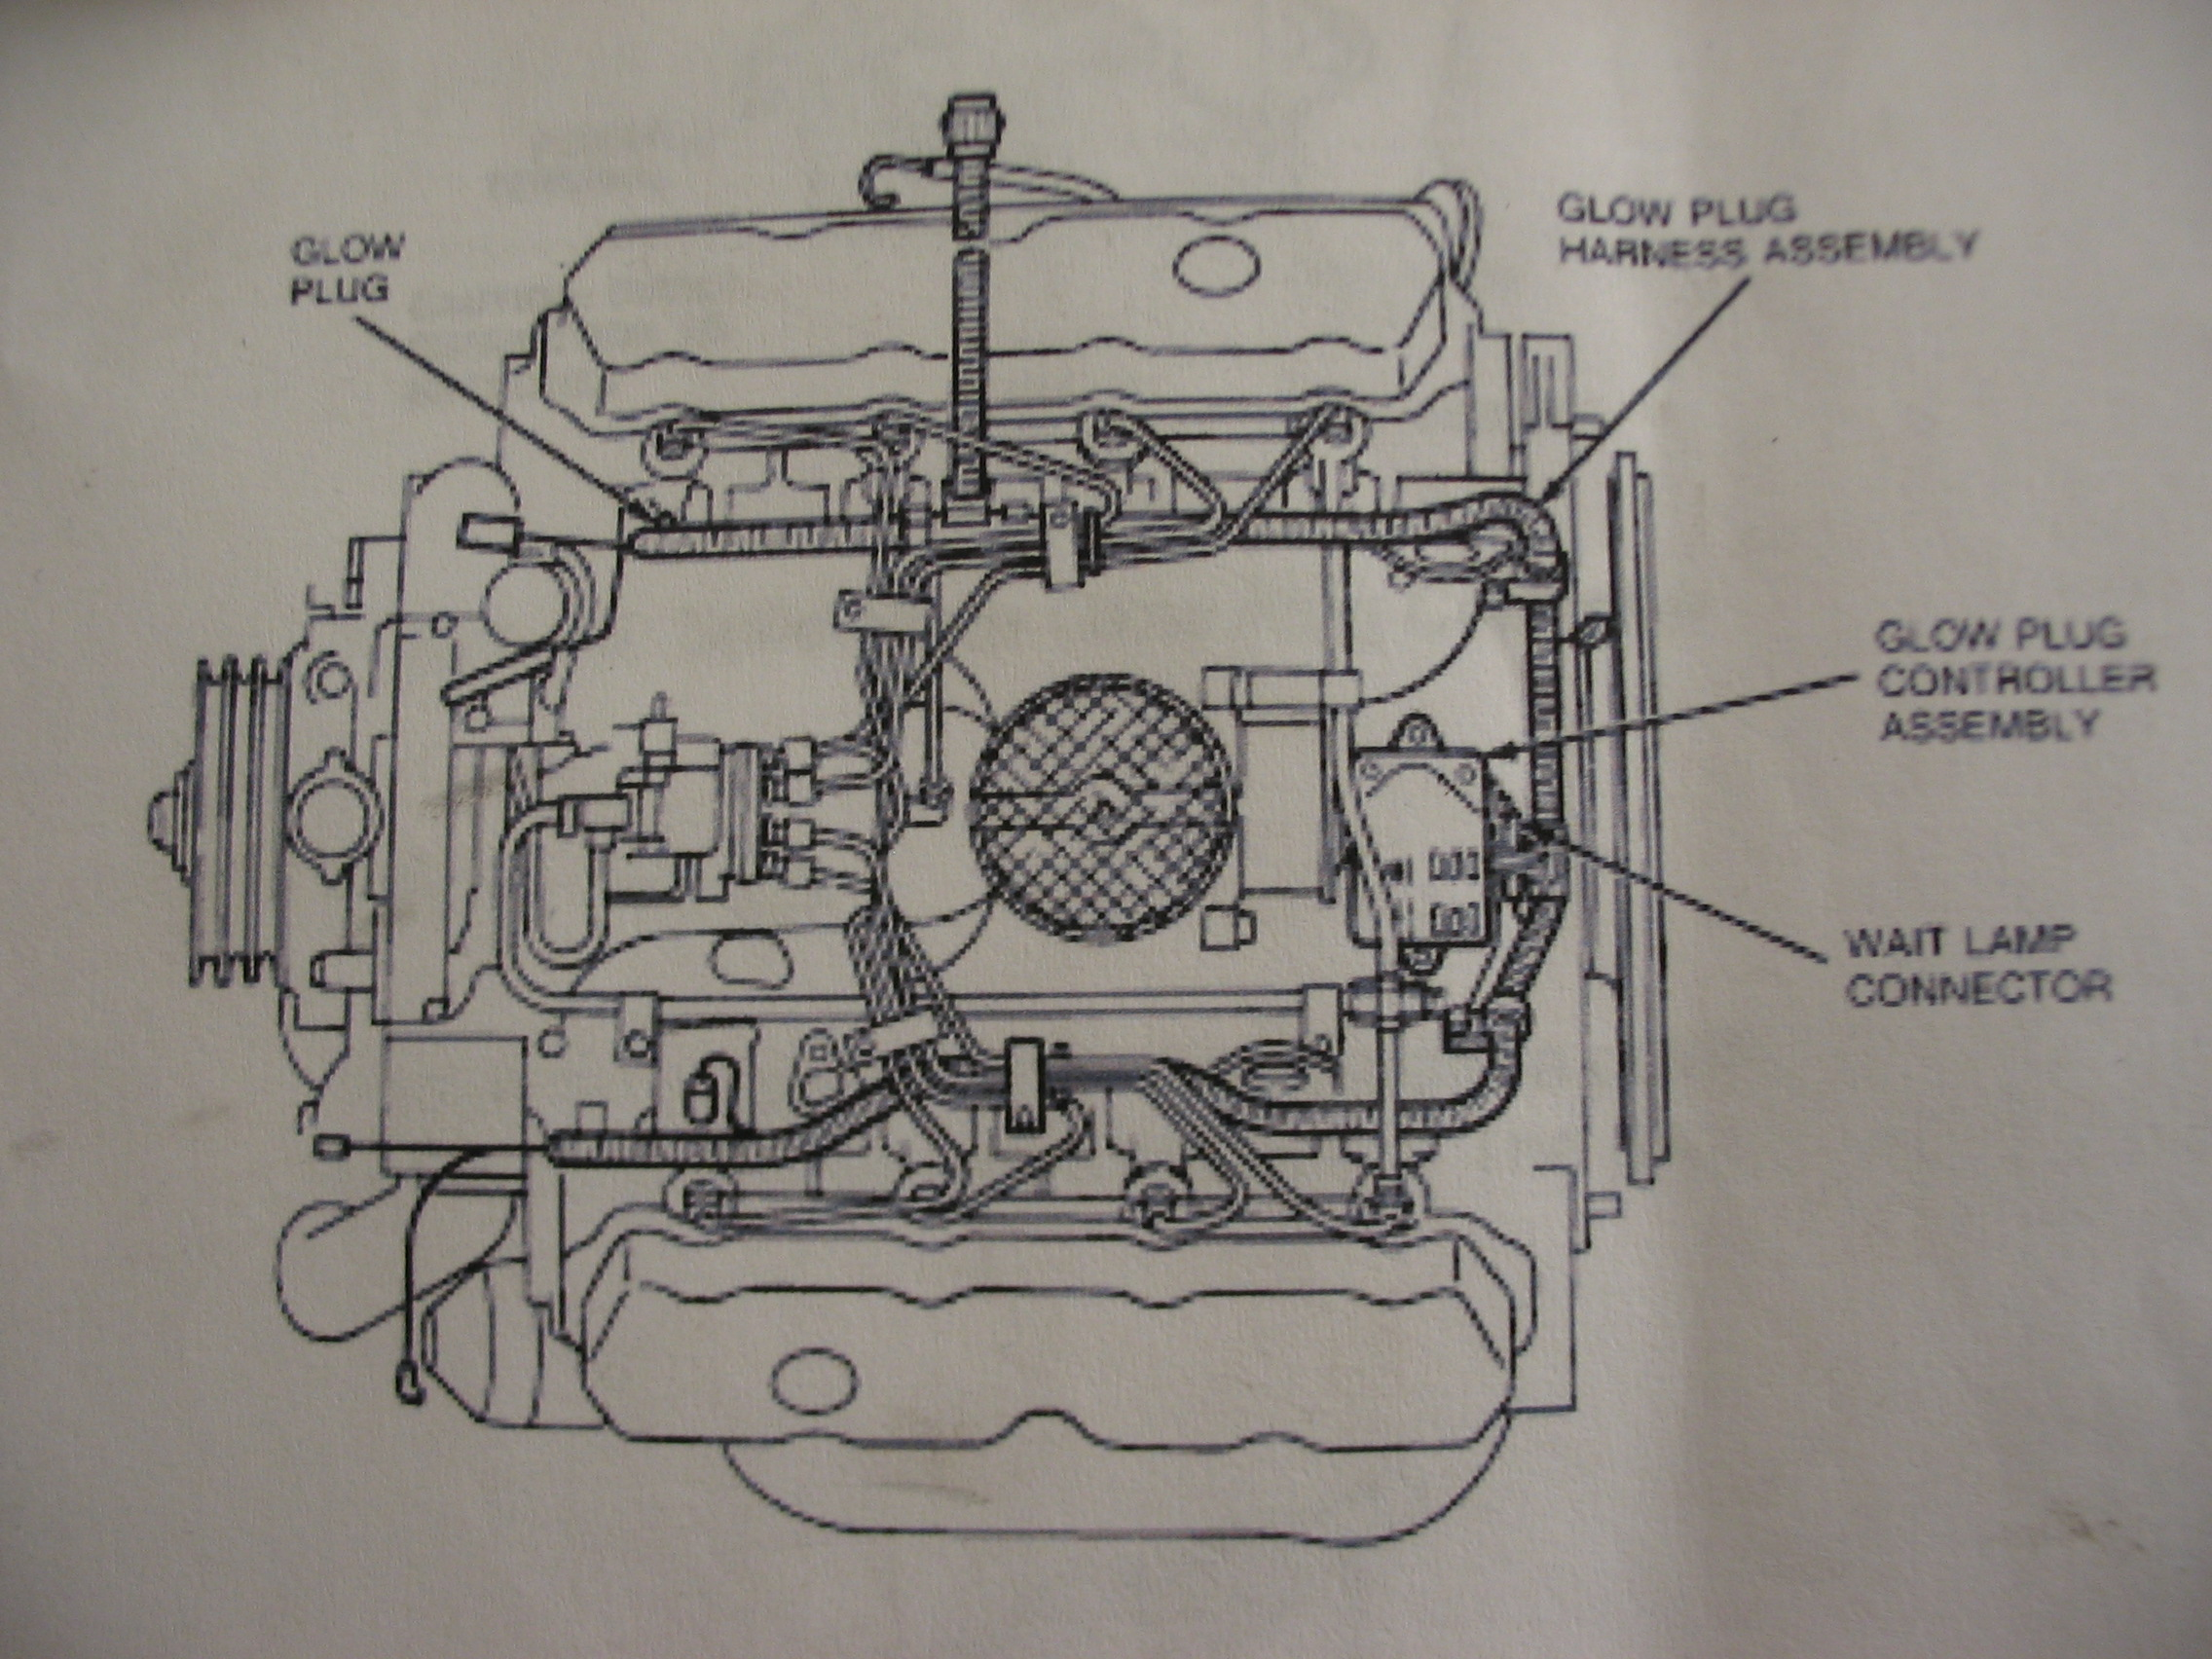 1990 F800 Diesel Wiring Diagram Library F700 91 Ford Glow Plug Location On Engine Drawing A